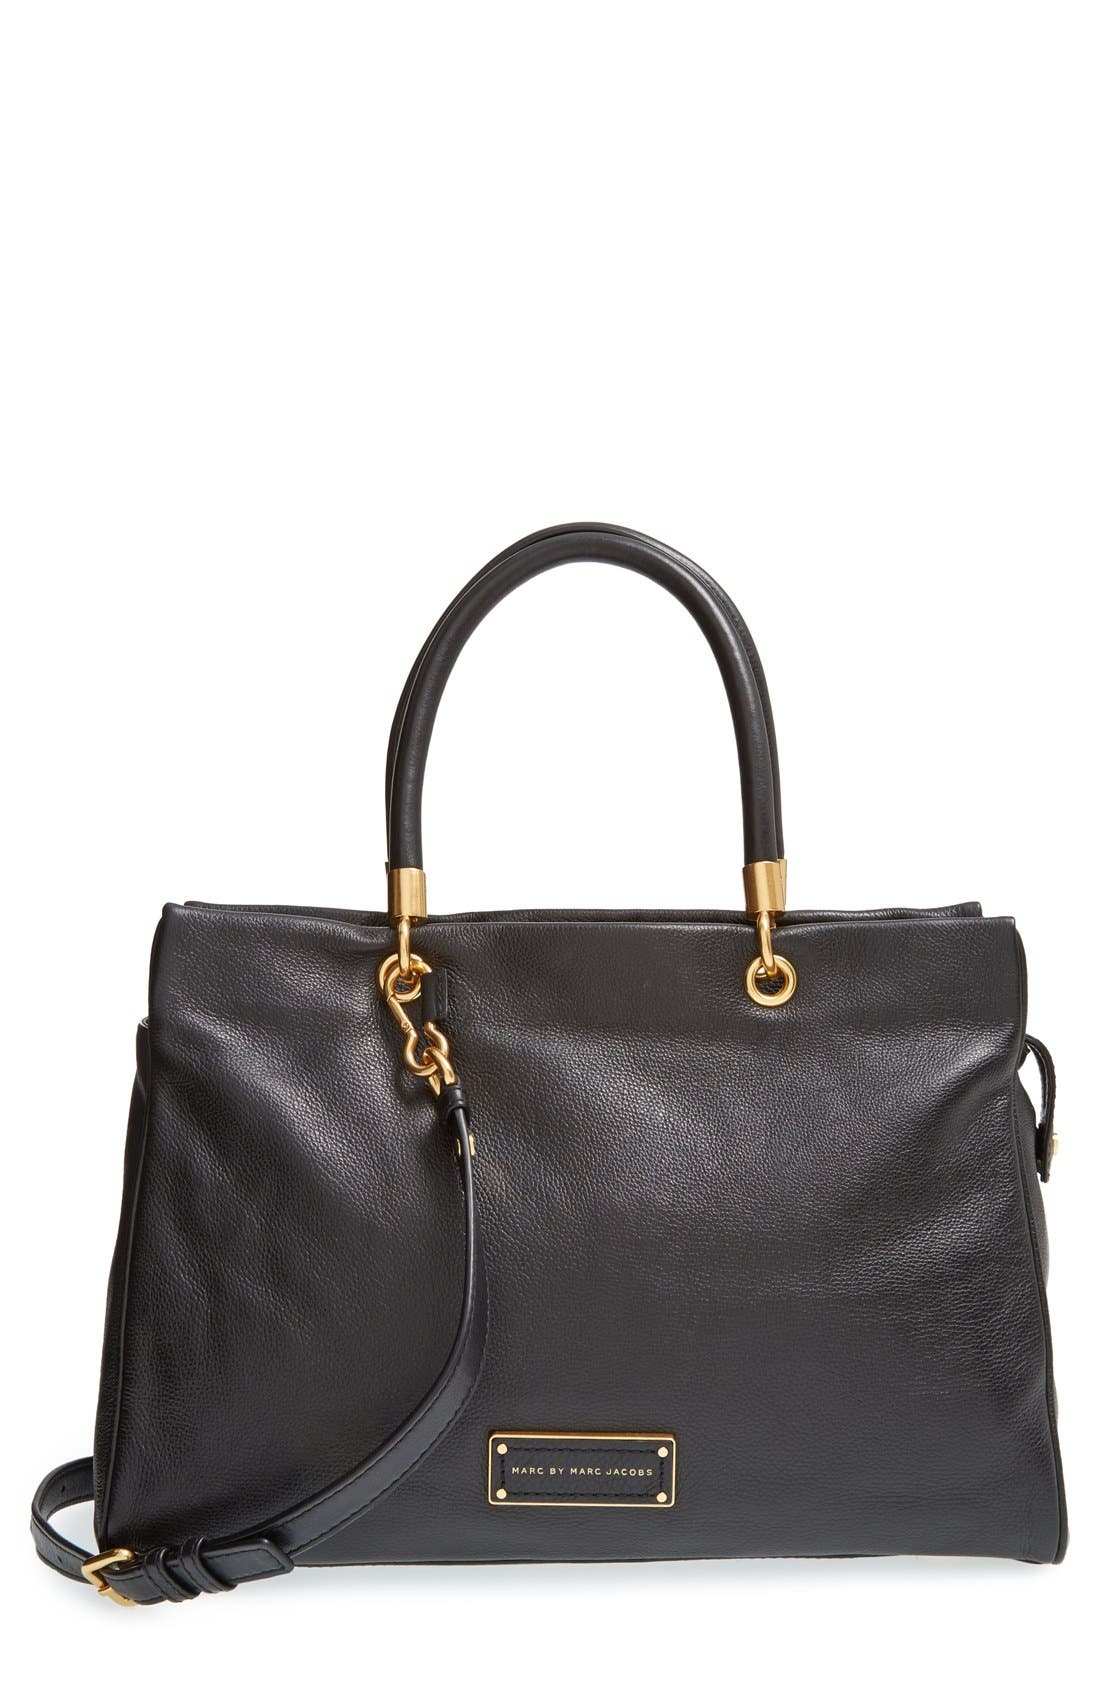 MARC JACOBS MARC BY MARC JACOBS 'Too Hot to Handle' Tote, Main, color, 001